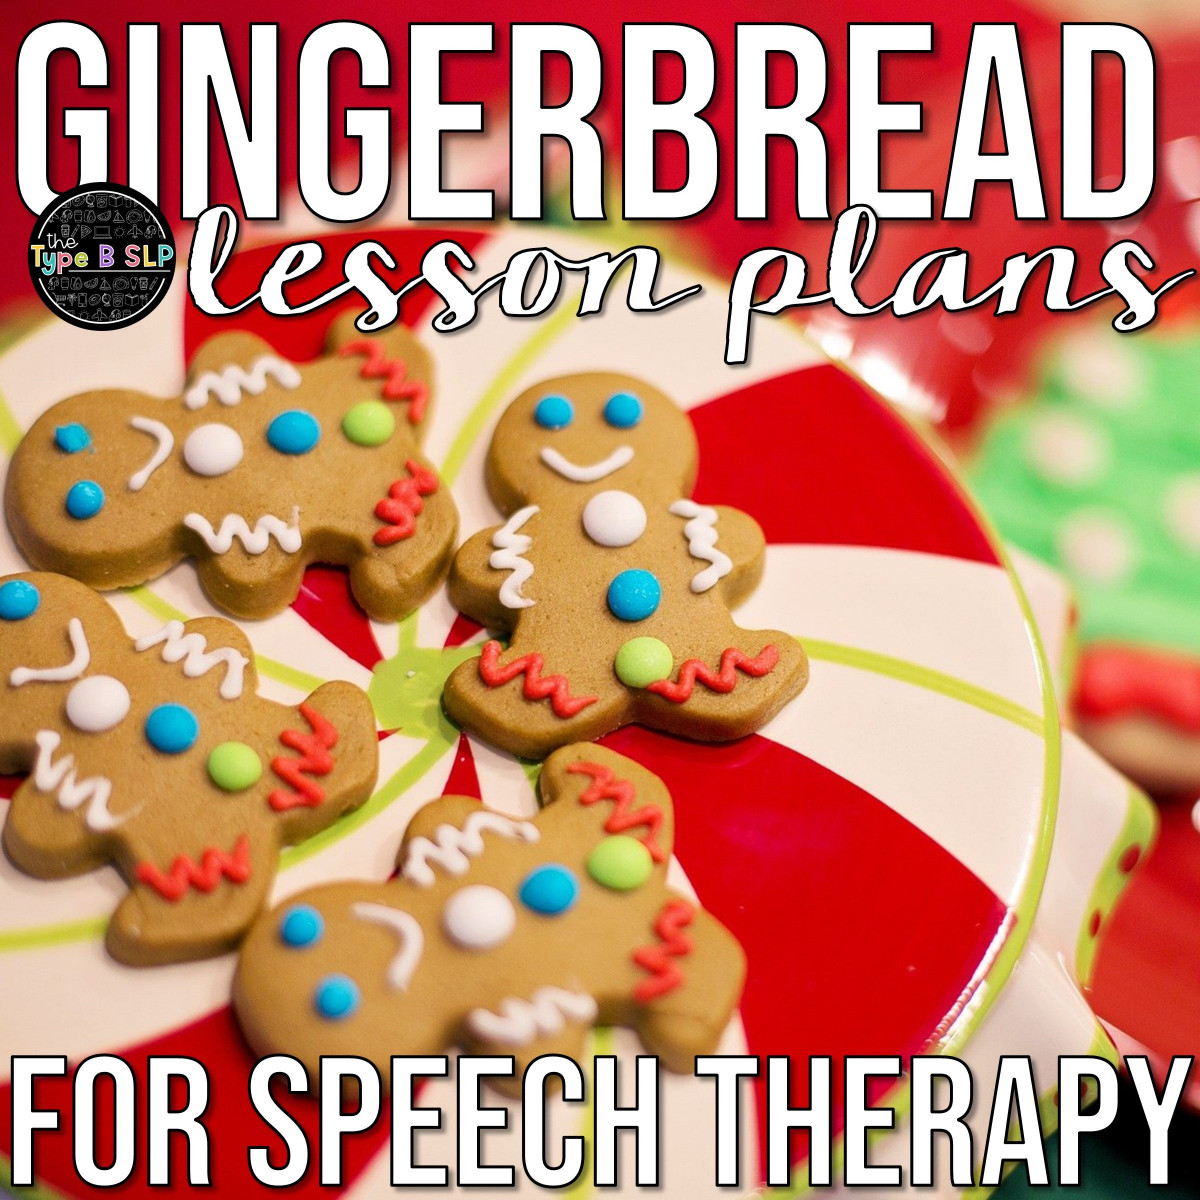 Gingerbread Speech Therapy Plans